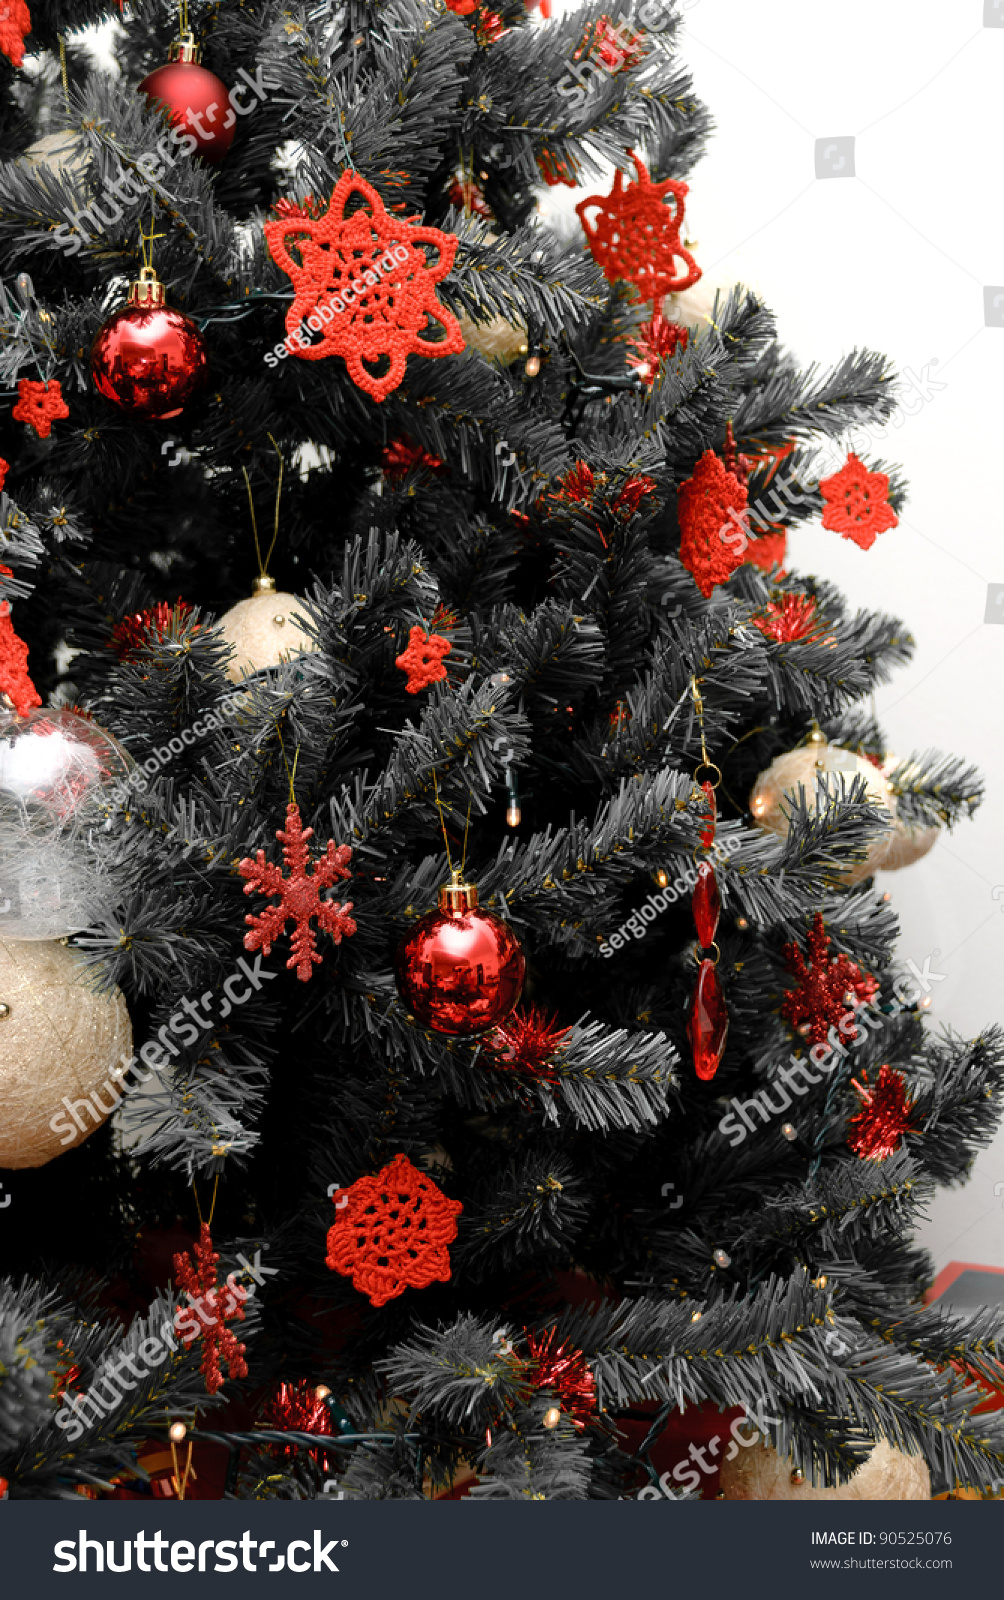 christmas tree in black and white with red decorations